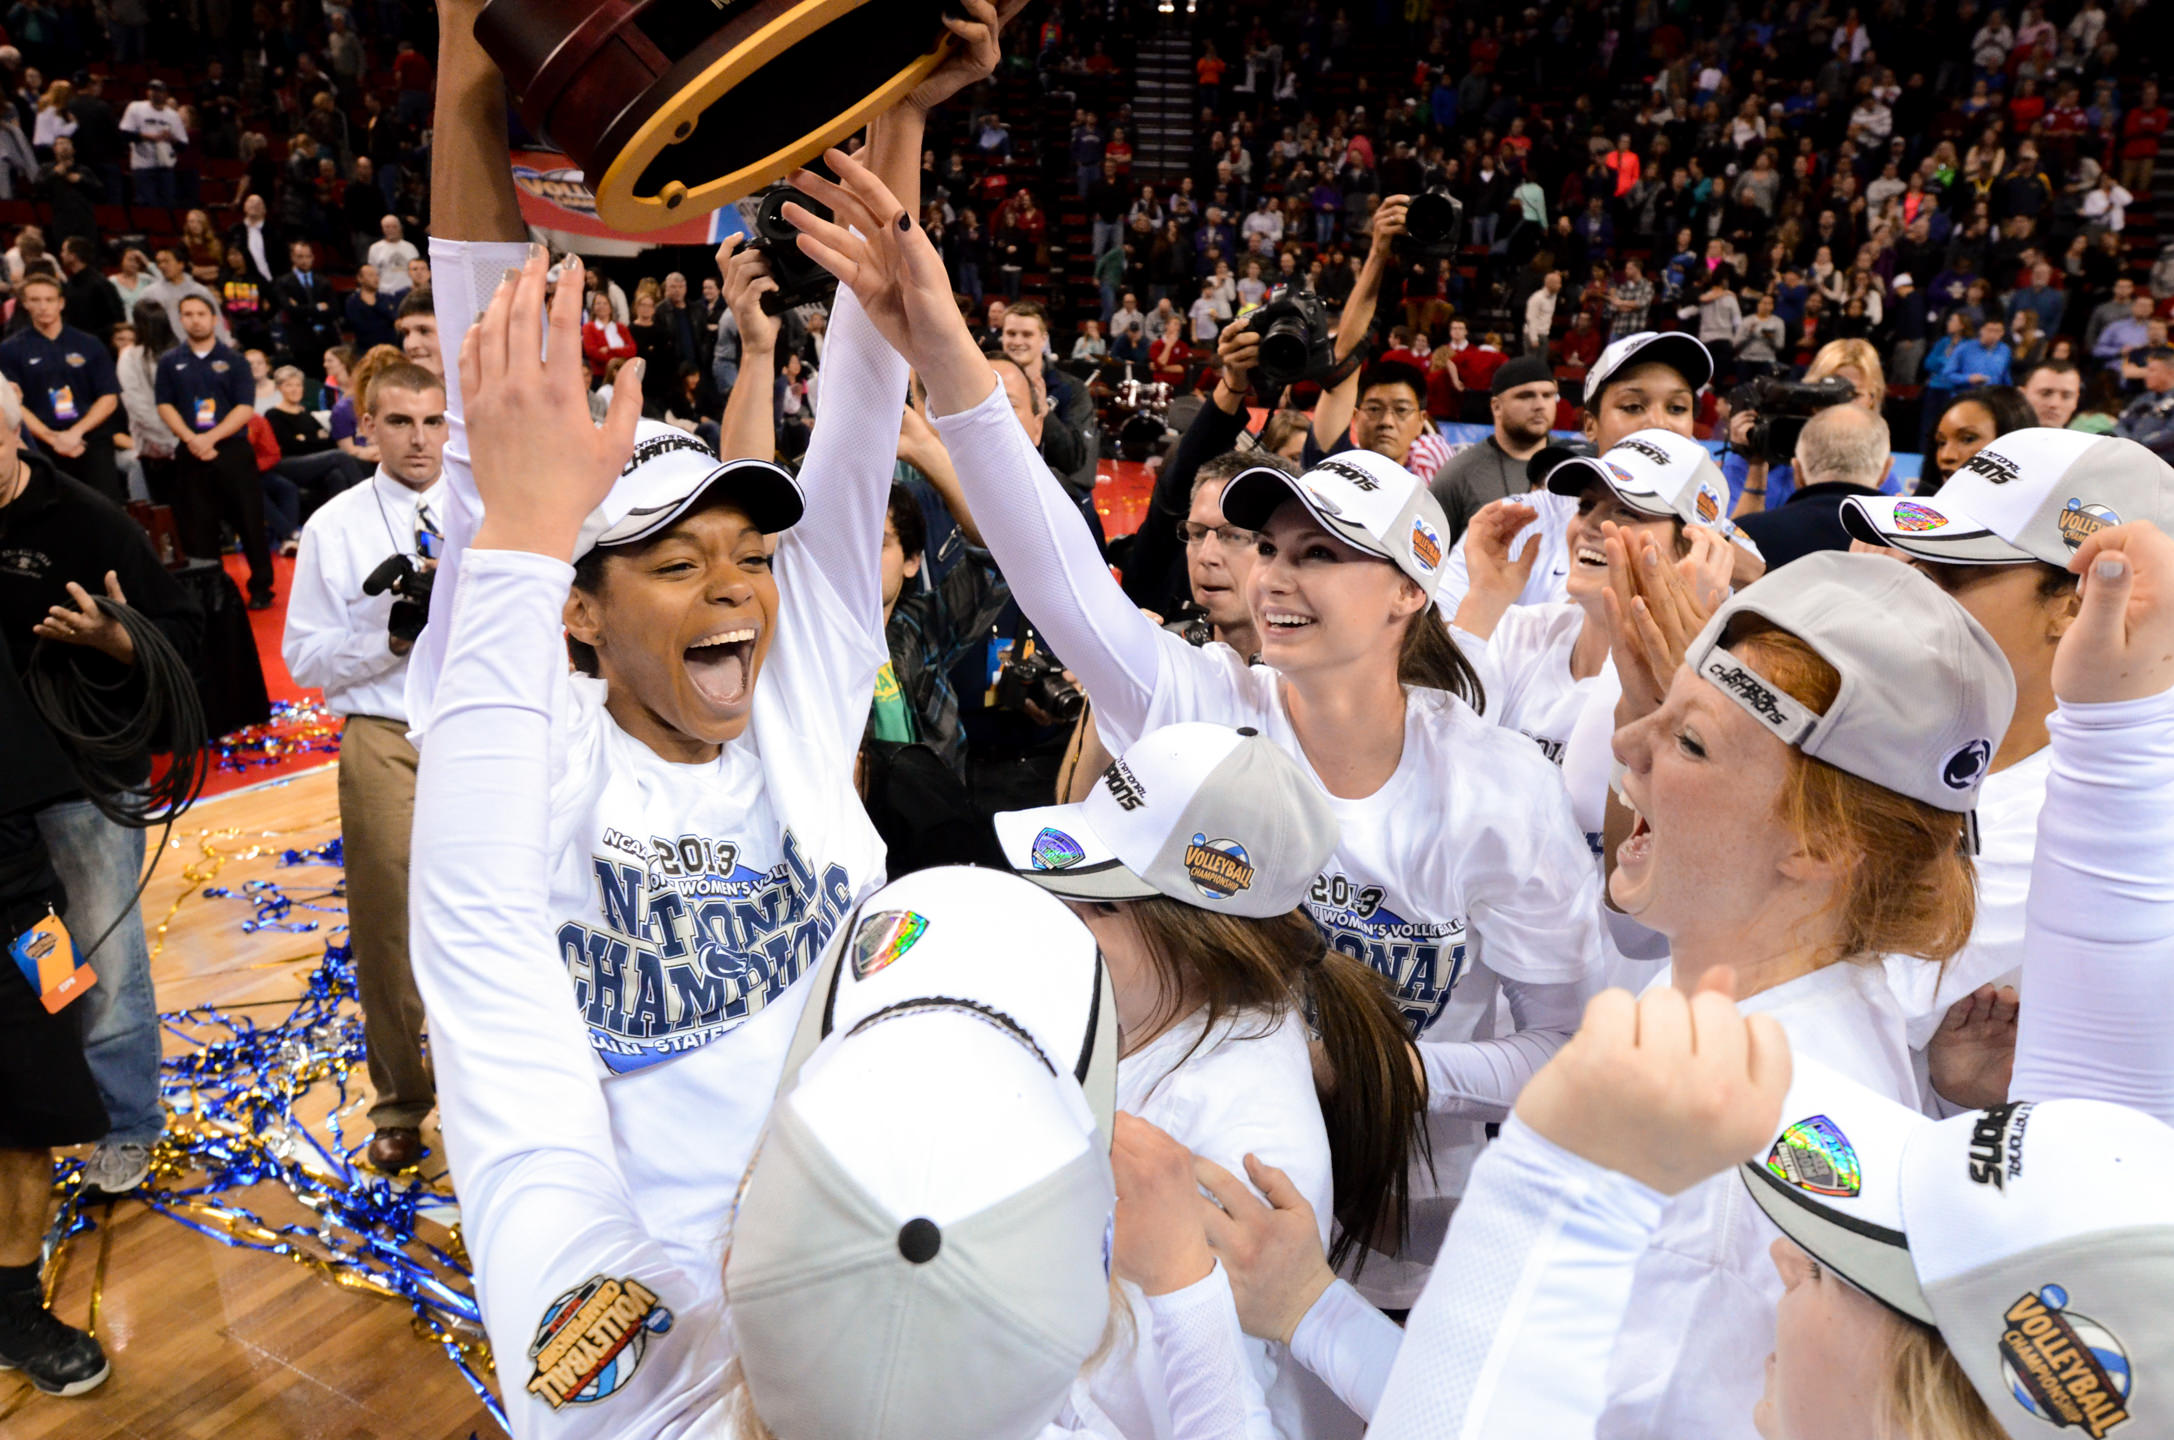 2014 NCAA Volleyball Champions Penn State Celebration